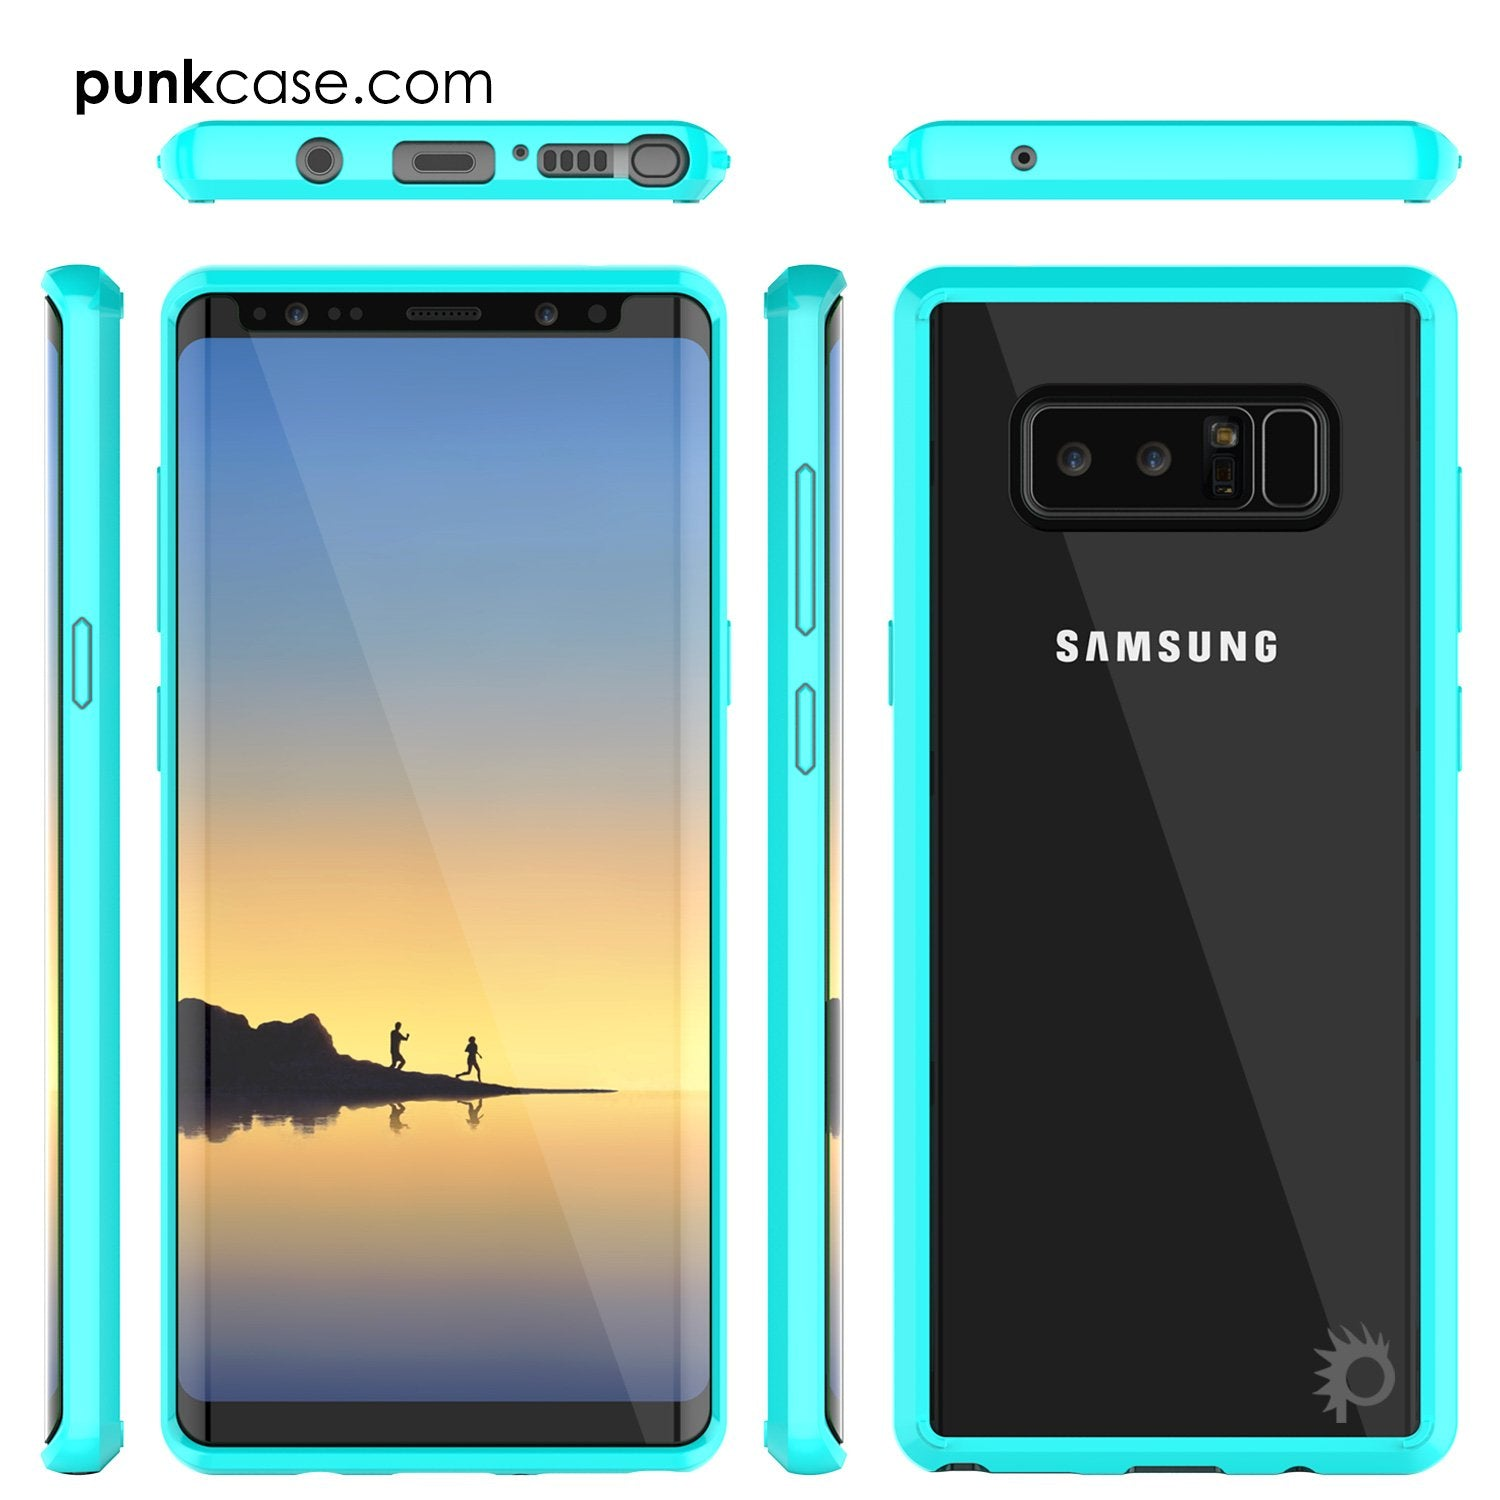 Galaxy Note 8 Case, PUNKcase [LUCID 2.0 Series] [Slim Fit] Armor Cover w/Integrated Anti-Shock System & Screen Protector [Teal]